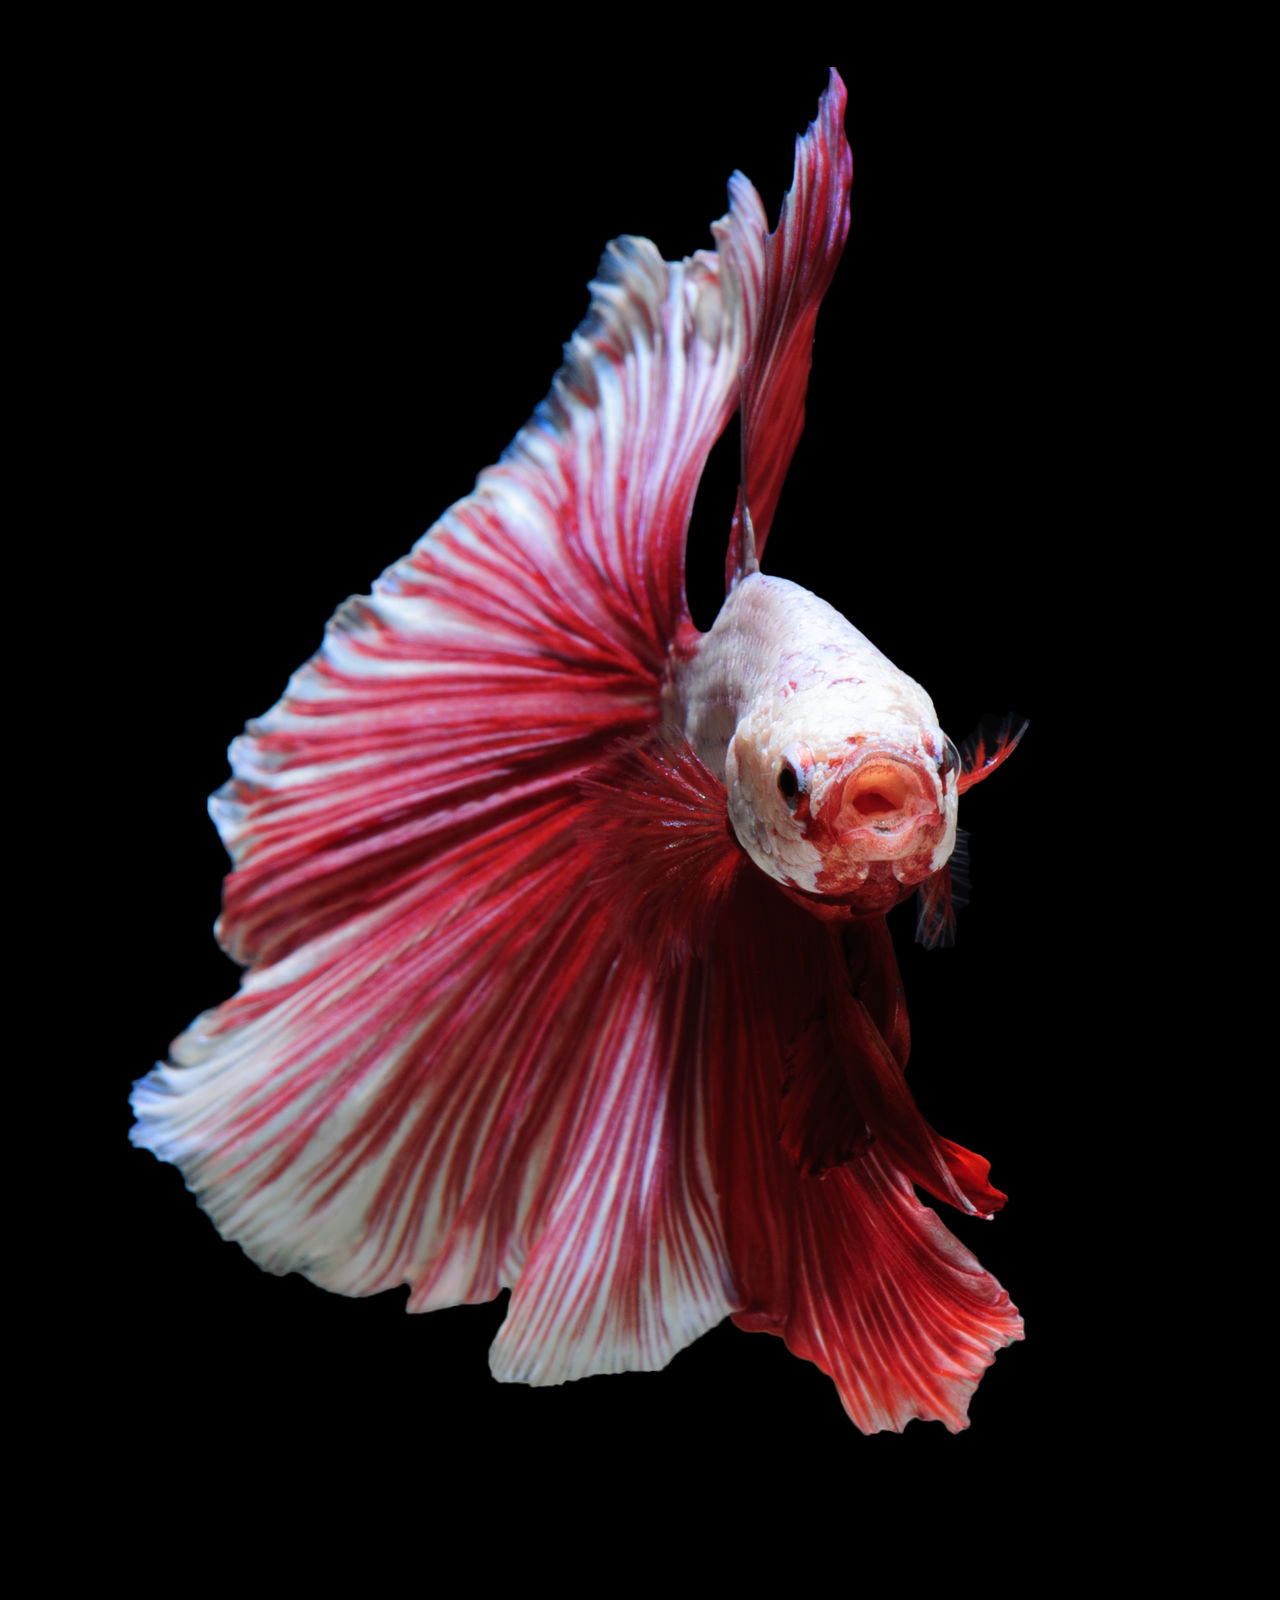 White-red betta fish, siamese fighting fish on black background Beauty In Nature Betta Fish Betta Lovers Bettafishcommunity Bettasiamesefish Black Background Close-up Fine Art Photography Flower Flower Head Focus On Foreground Fragility Growth Nature No People Outdoors Petal Pink Color Pollen Selective Focus Siamese Fighting Fish